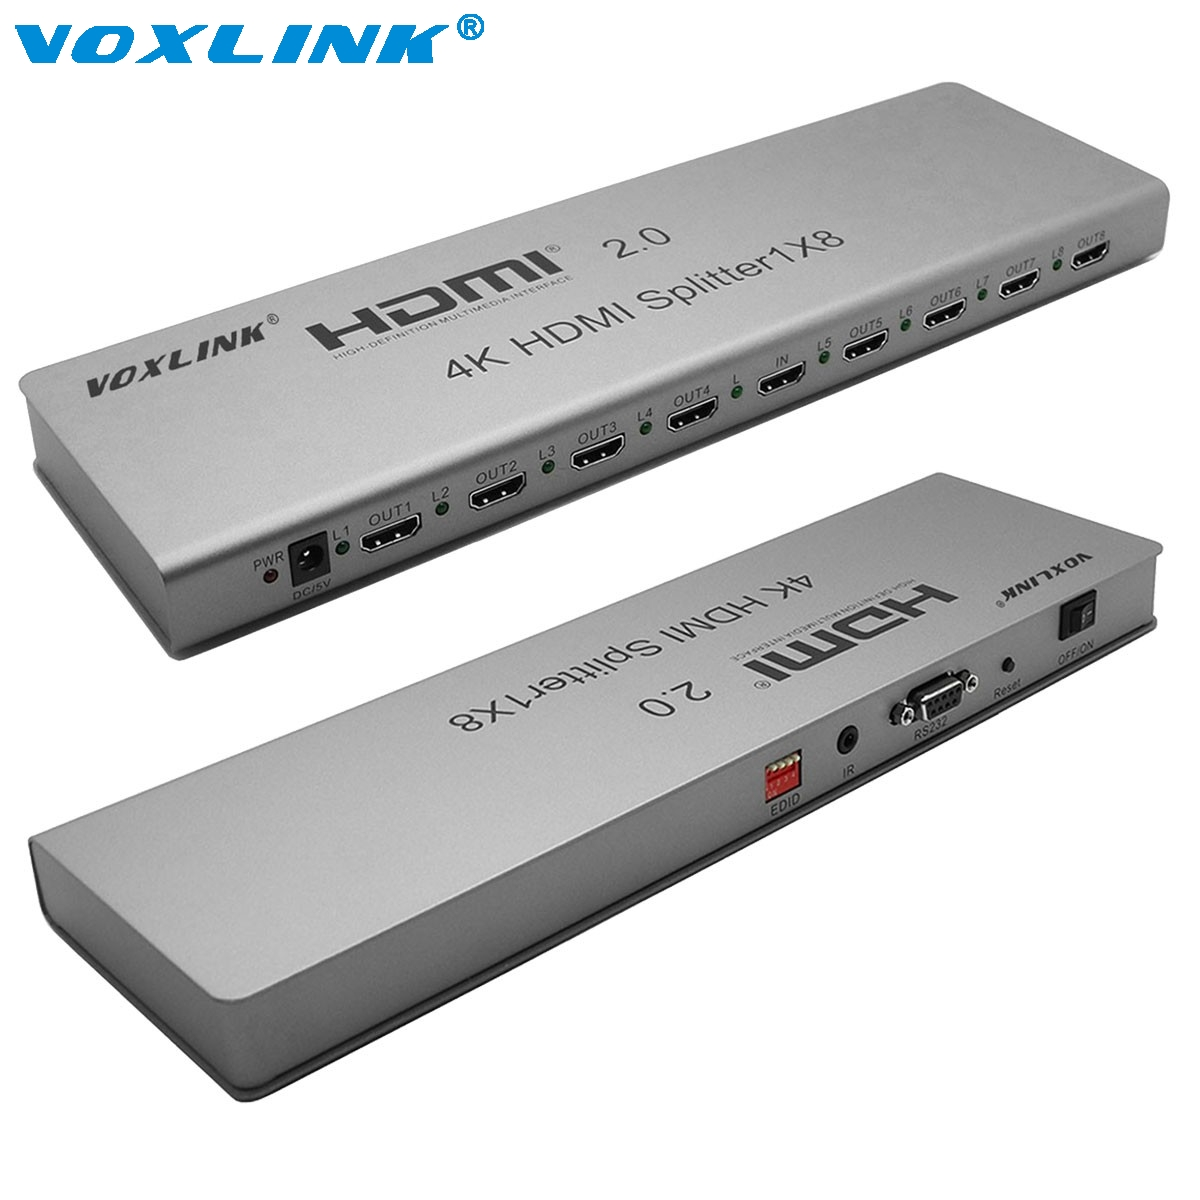 VOXLINK 4K 8Port HDMI 2.0 splitter 1 In 8 Out HDMI Switcher Splitter Support HDCP2.2,IR extension EDID mangement 3D For PS3 DVD hdmi splitter 1 in 2 out support 3d 4k x 2k hdcp edid